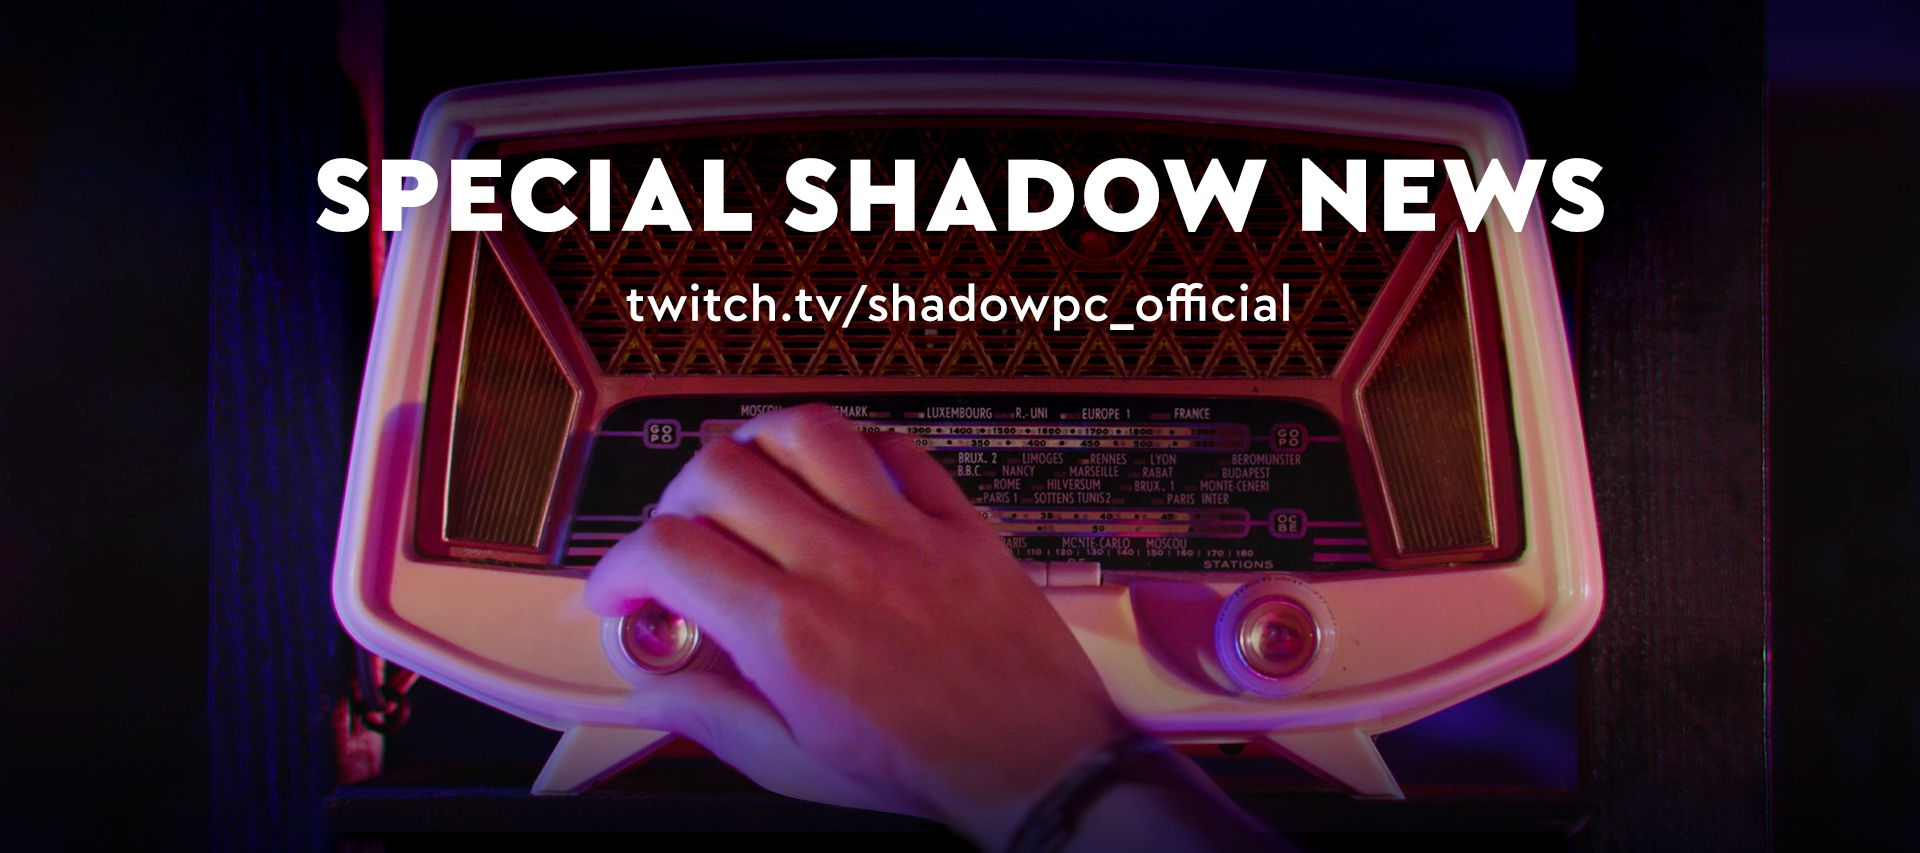 Tune in for an exclusive U.S. announcement on Twitch!